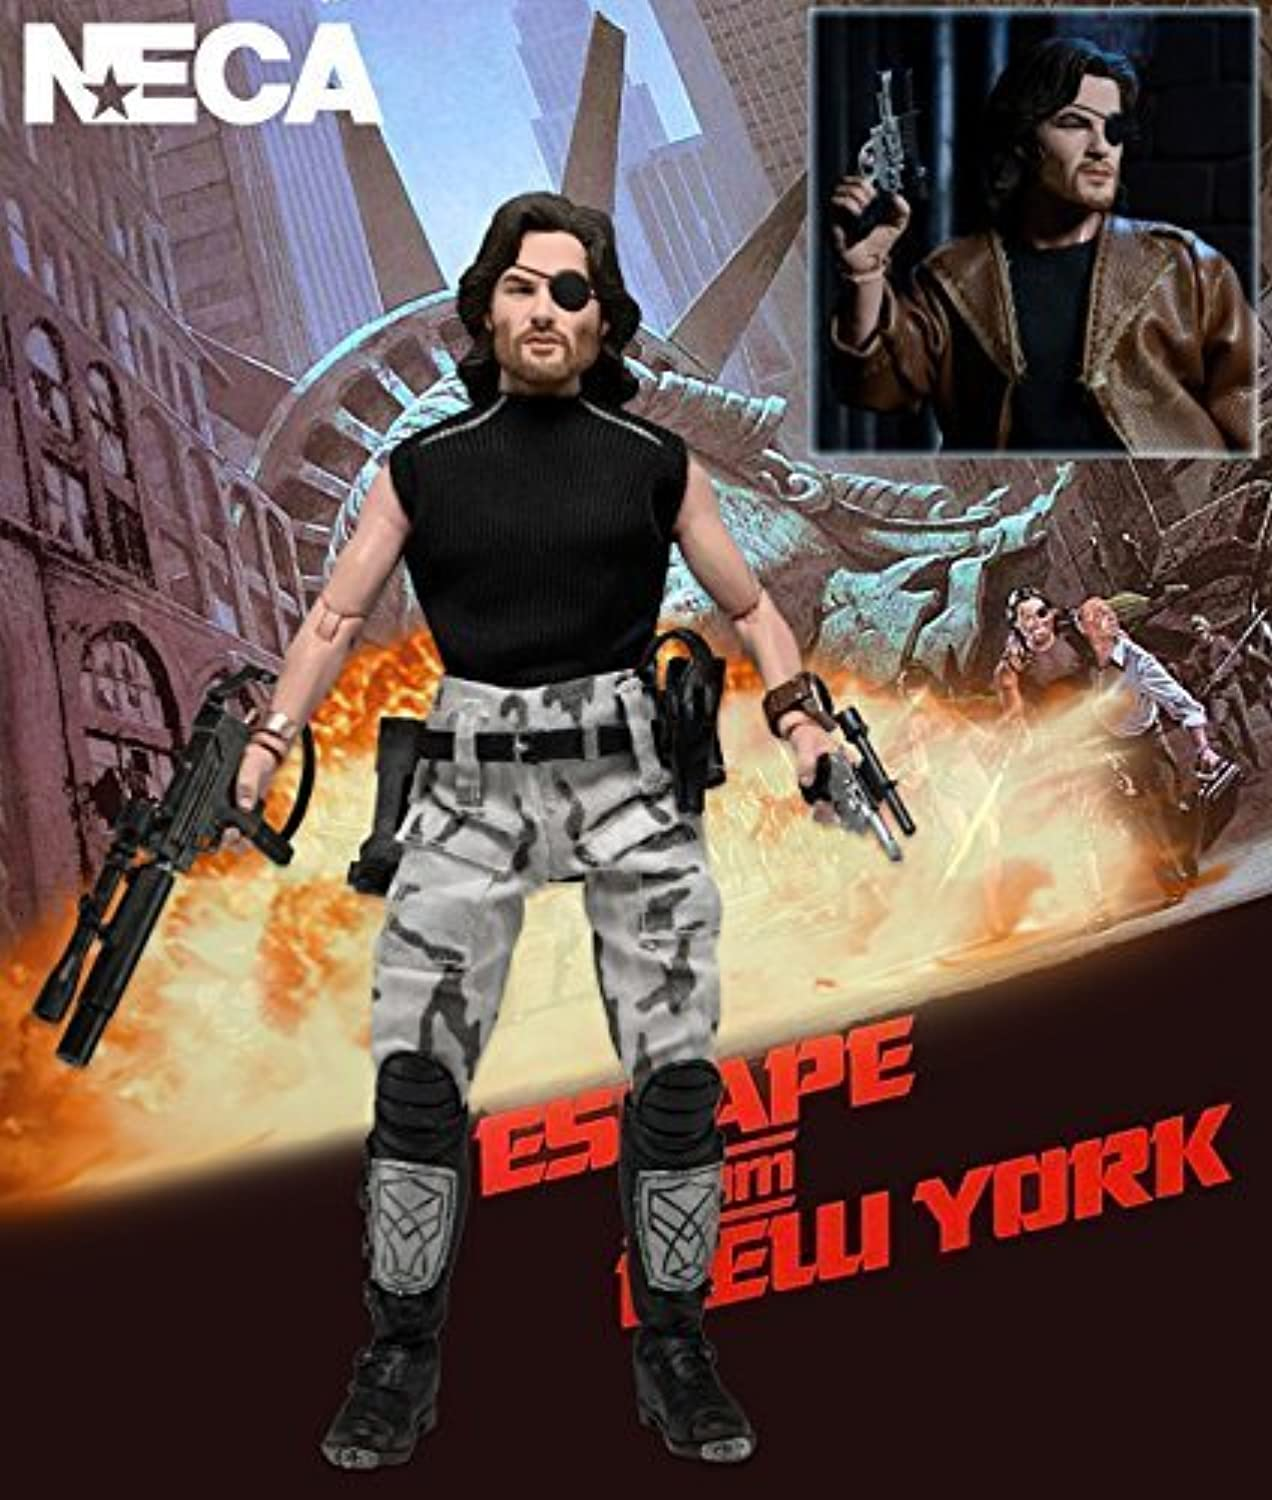 exclusivo NECA Escape from New York 8  Clothed Retro Style Style Style Acción Figura Snake Plissken Kurt Russell by NECA  mejor servicio